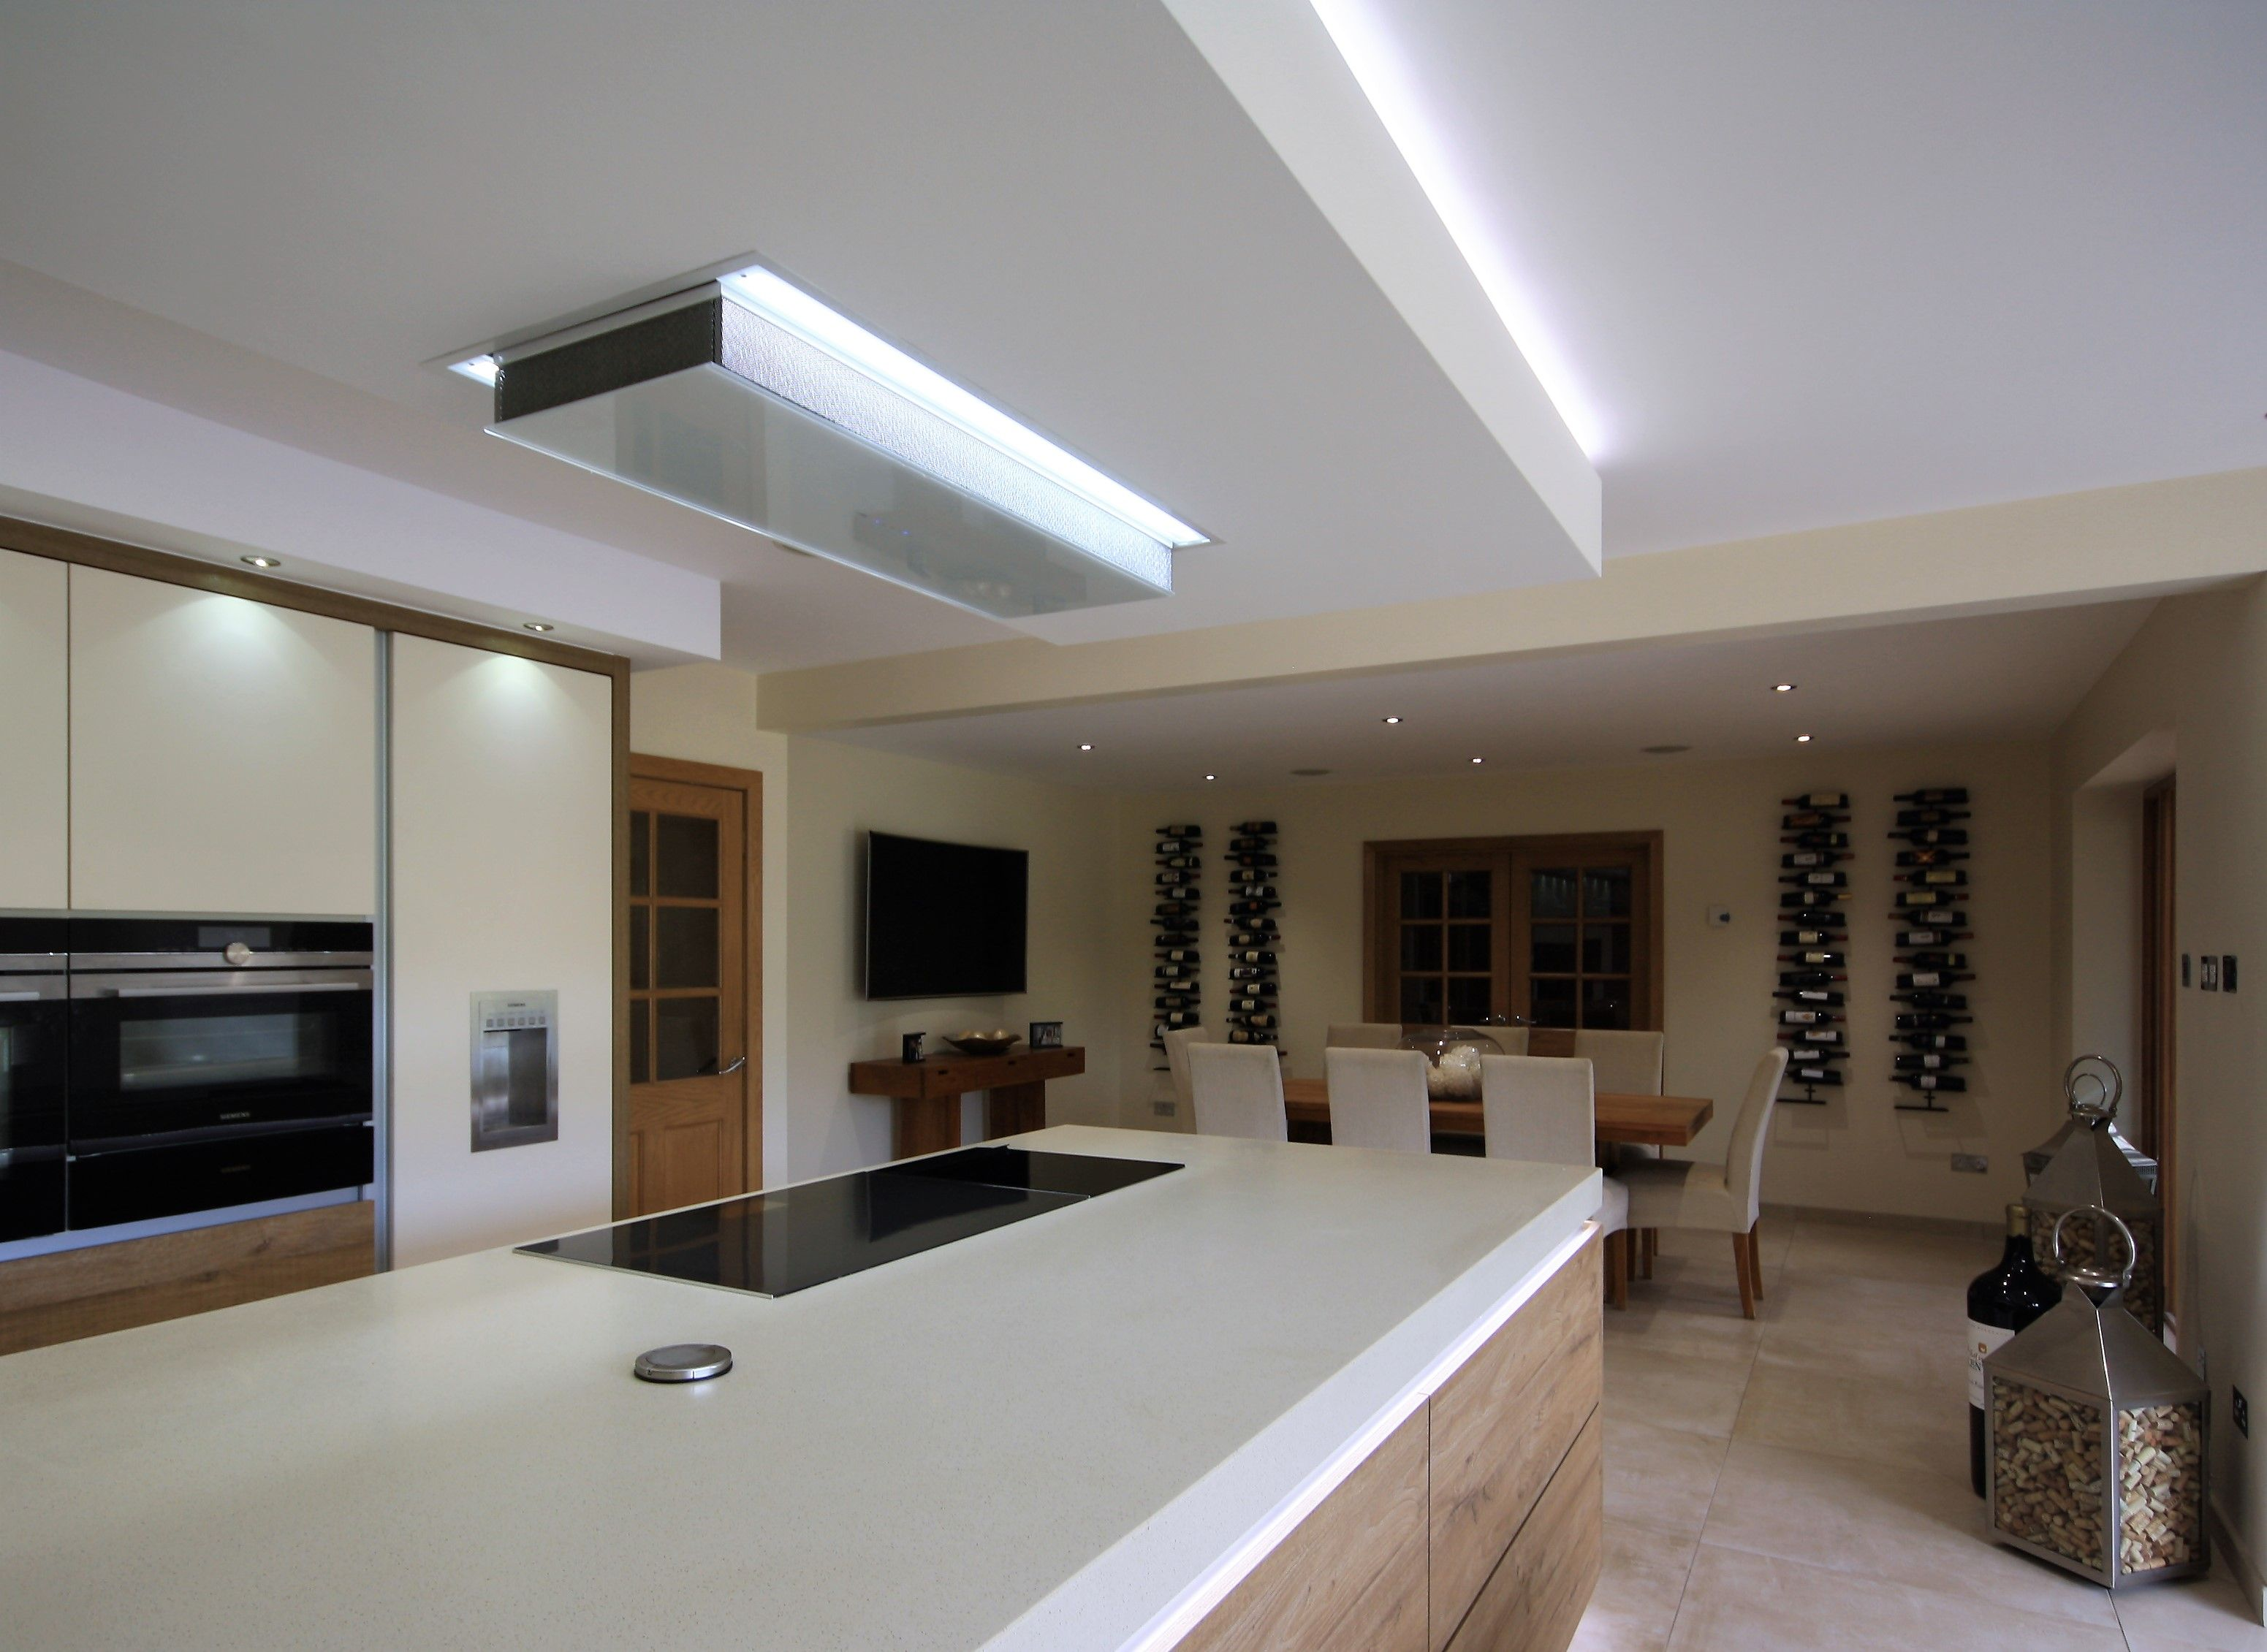 Ceiling Mounted White Extractor Hidden Within The Boxing Which Is The Same Length And W Ceiling Exhaust Fan Bathroom Ceiling Exhaust Fan Ceiling Fan In Kitchen